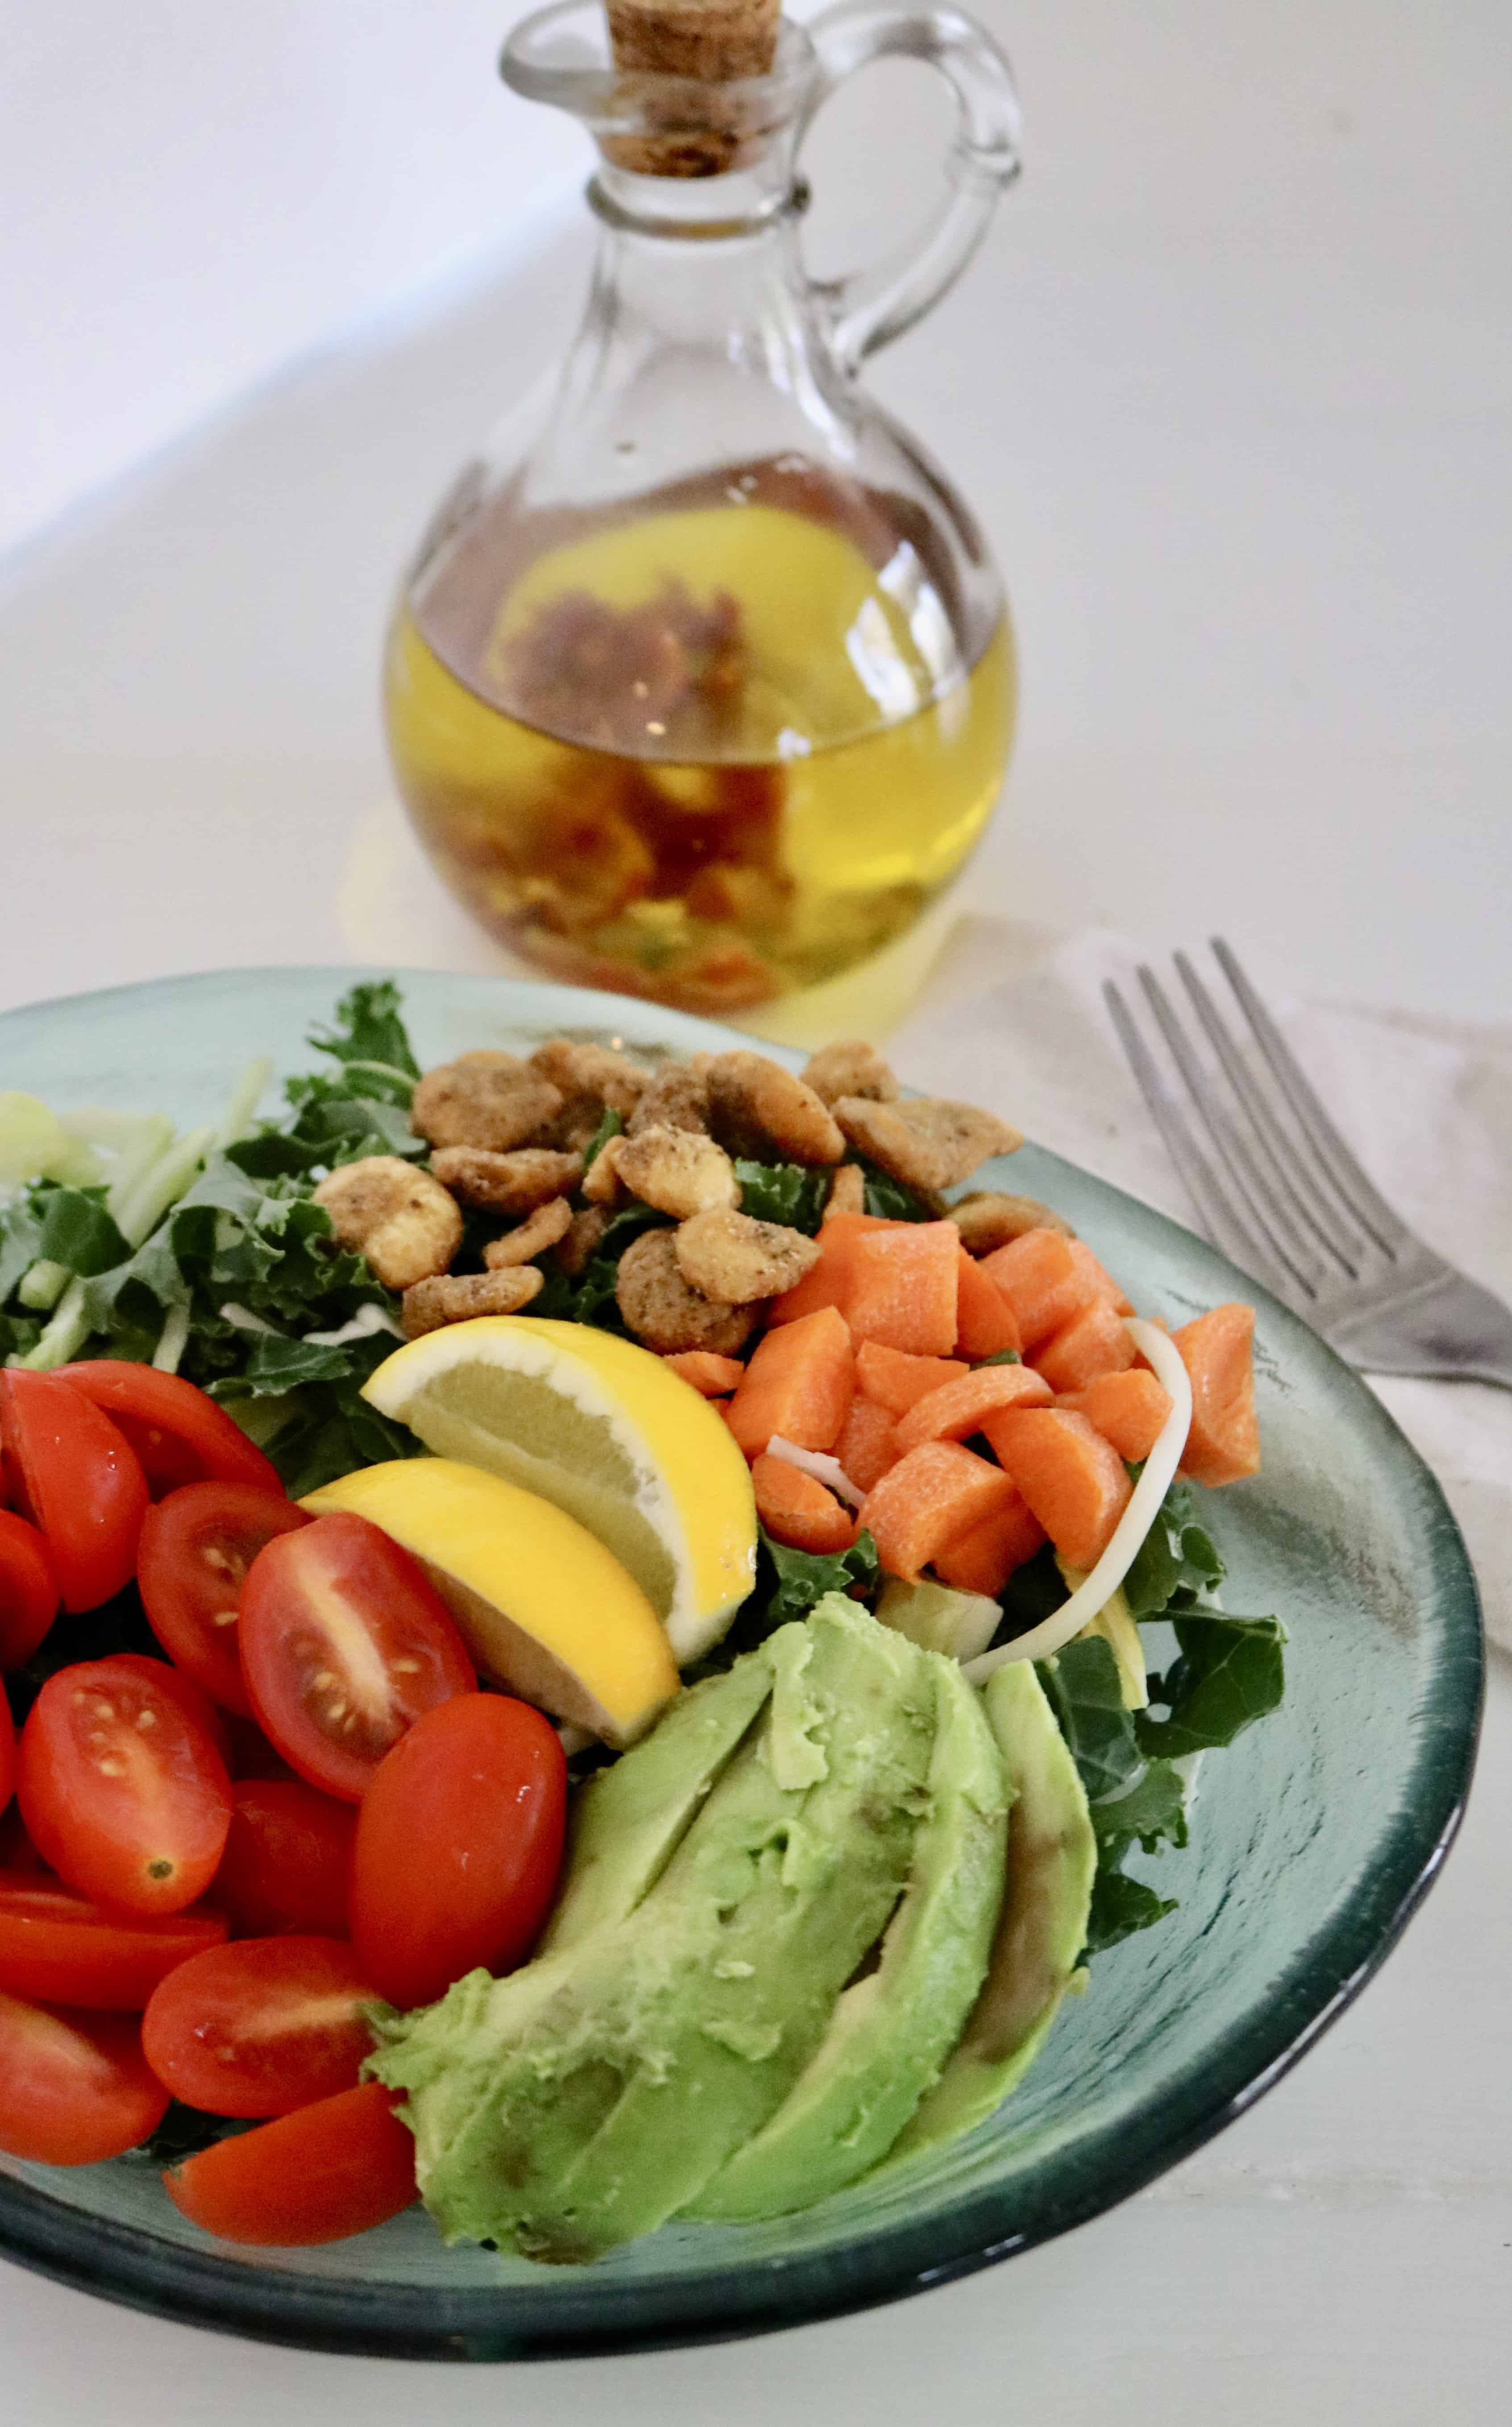 Green Goddess Salad with Chili Infused Olive Oil- Vegan and gluten free, under $3 a serving! @shawsimpleswaps